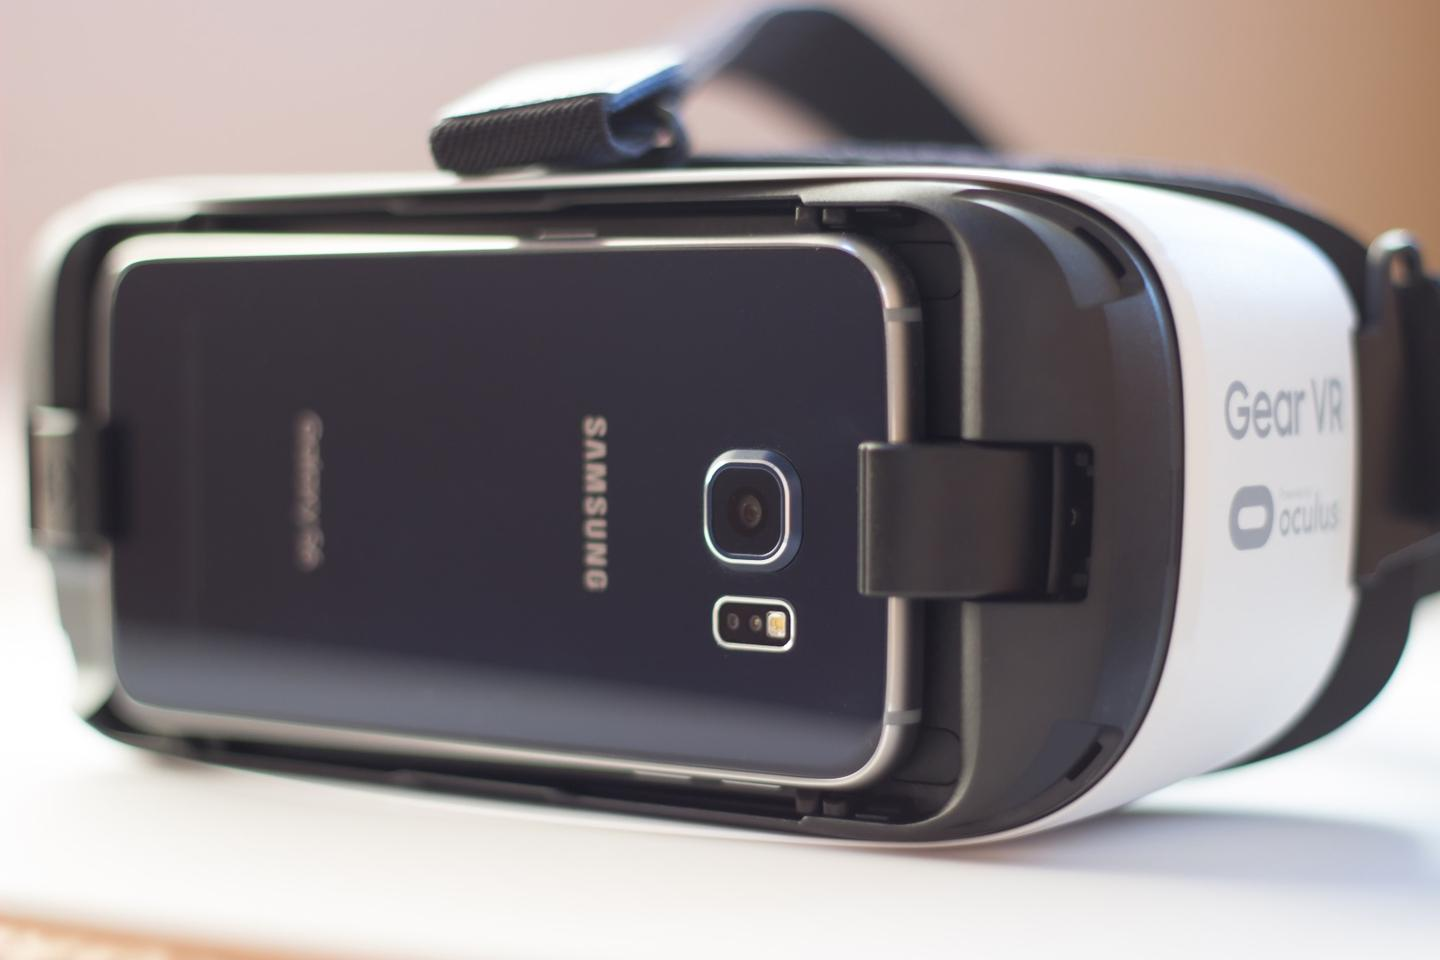 The new Galaxy S7 will fit inside the same Gear VR that already works with last year's Galaxy flagships